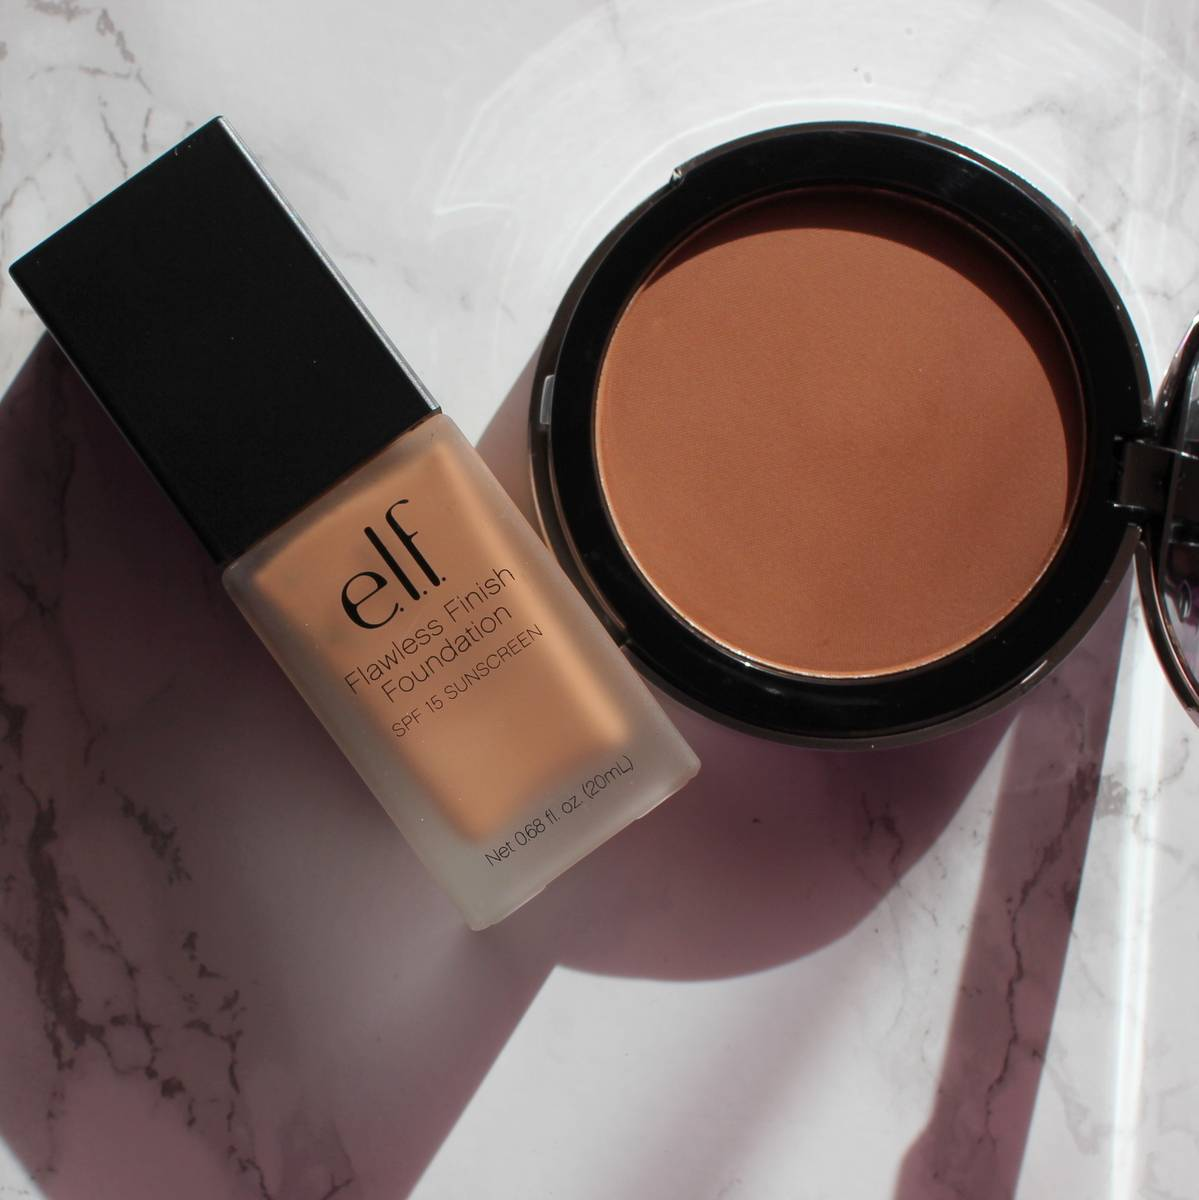 e.l.f cosmetics Finishing Powder